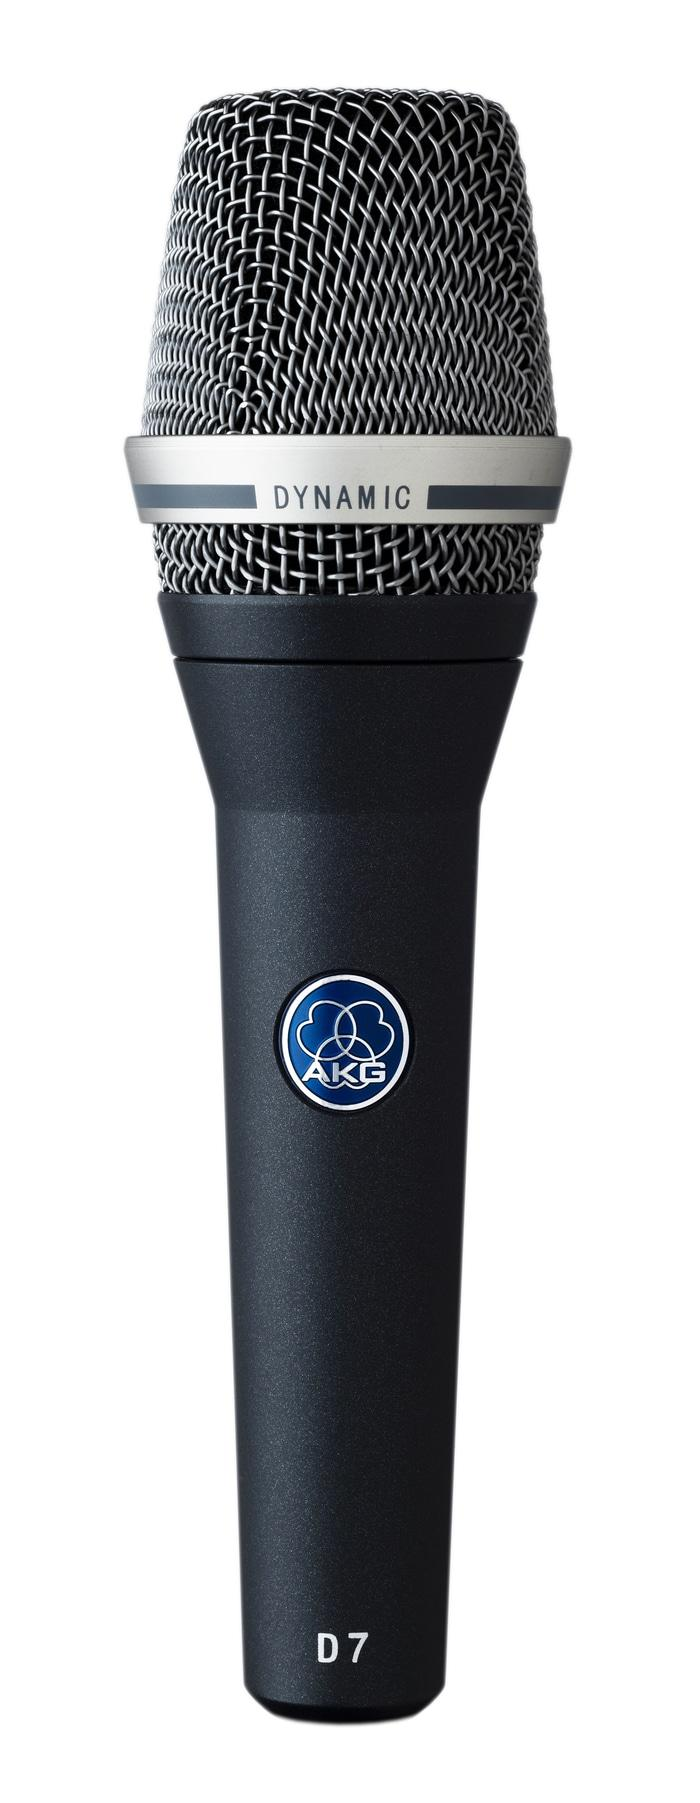 AKG D7 (S) REFERENCE DYNAMIC VOCAL MICROPHONE ORIGINAL